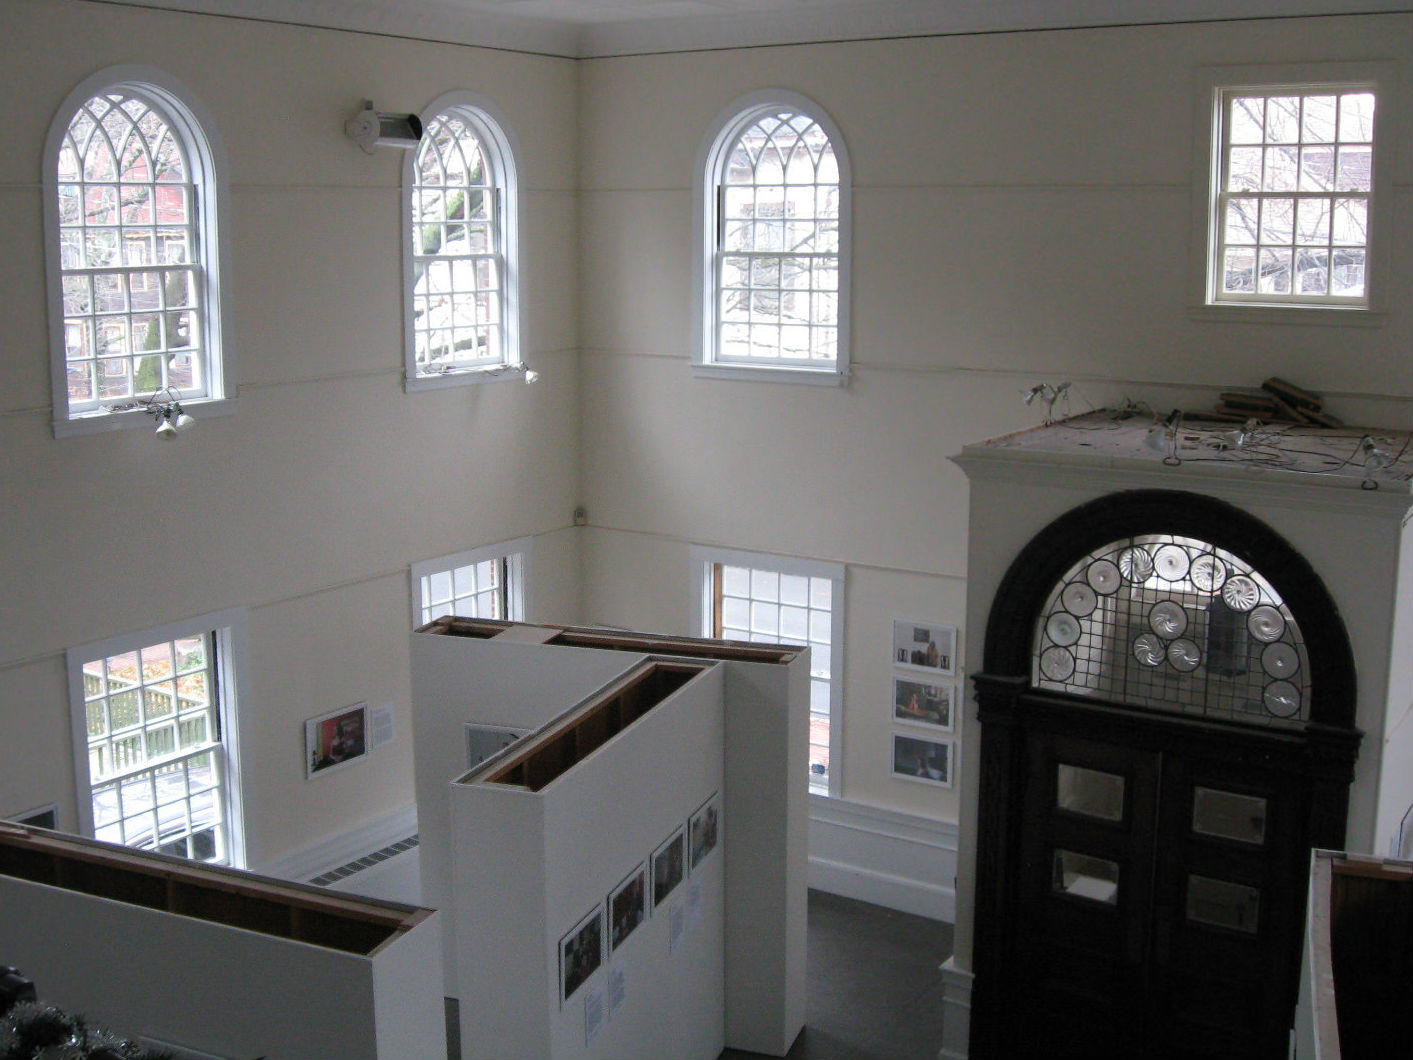 Image of the Somerville Museum